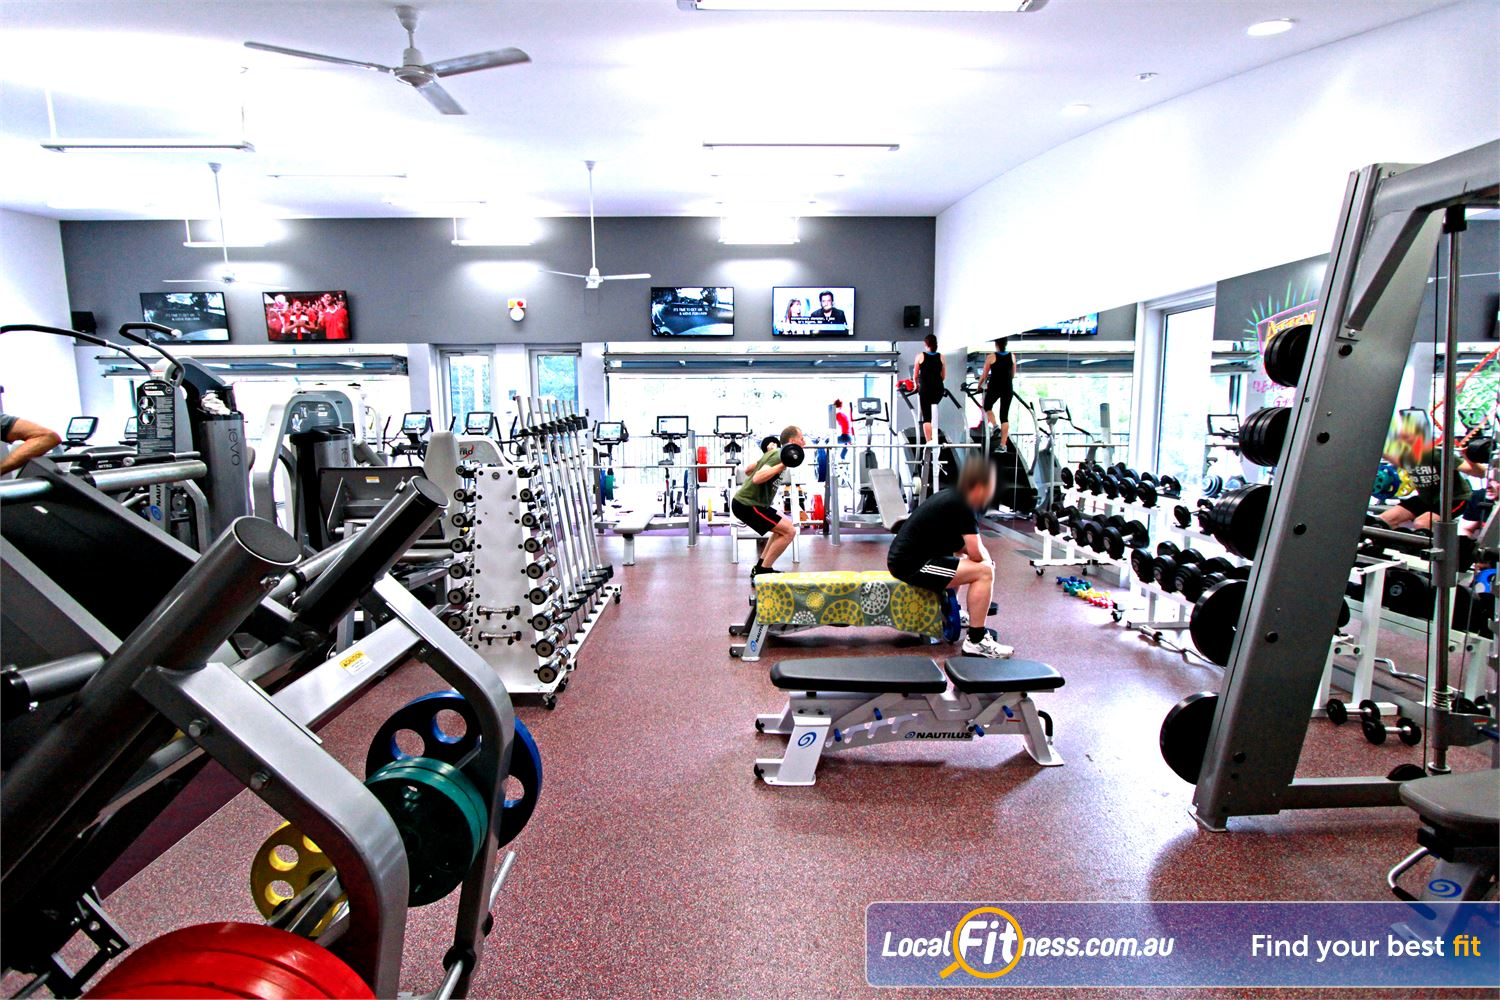 Monbulk Aquatic Centre Monbulk The comprehensive free-weights area in our Monbulk gym.